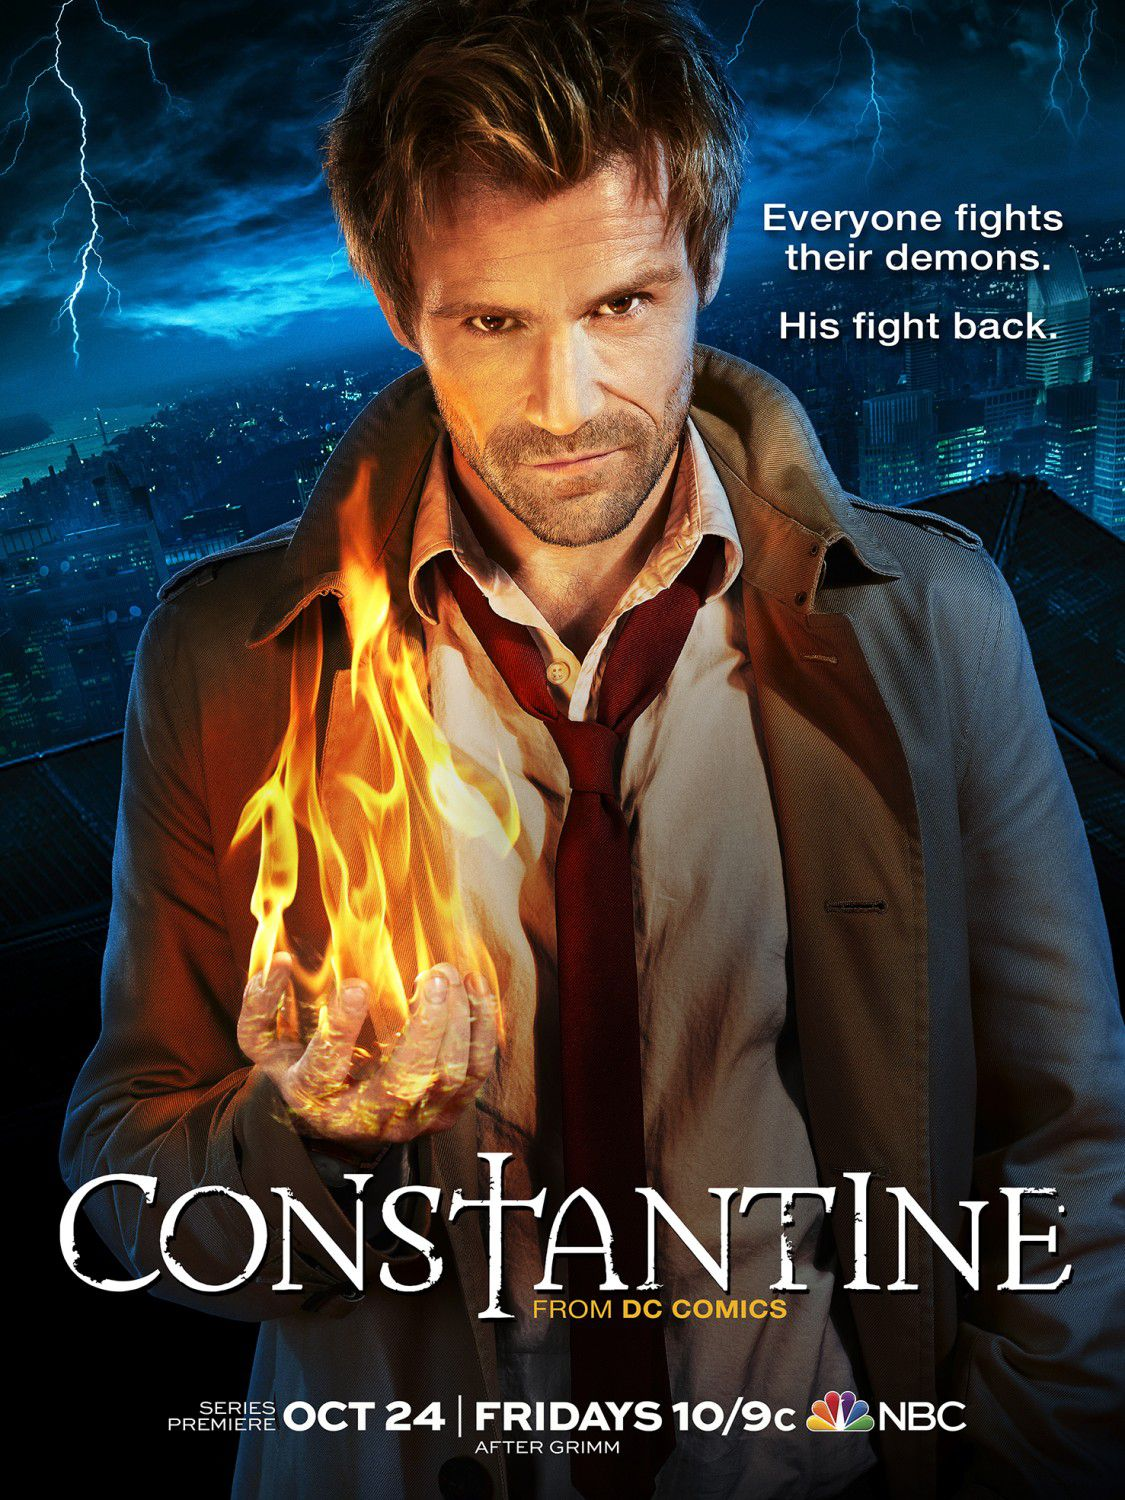 Constantine - Series TV - magic poster - Everyone fights their Demons. His fight back.